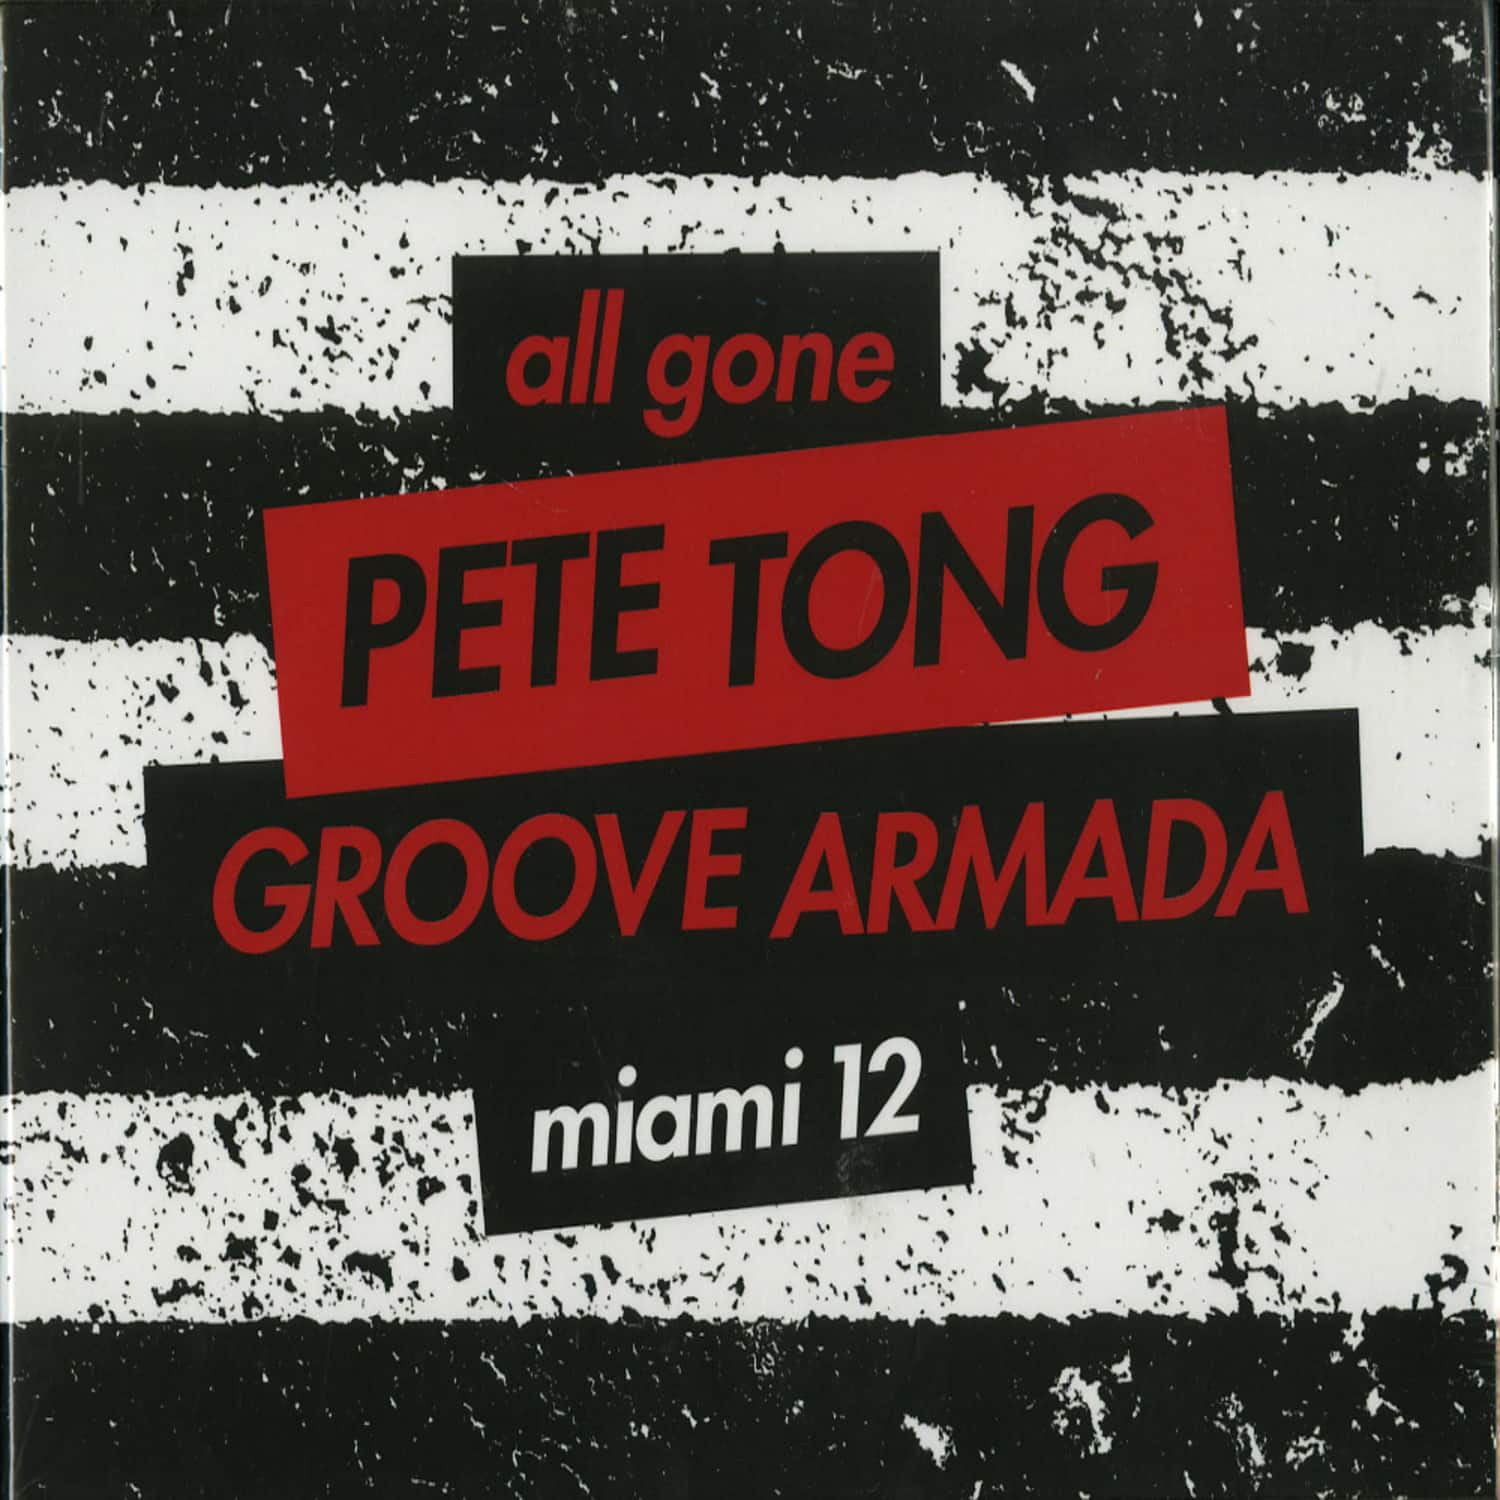 Pete Tong & Groove Armada - ALL GONE MIAMI 12